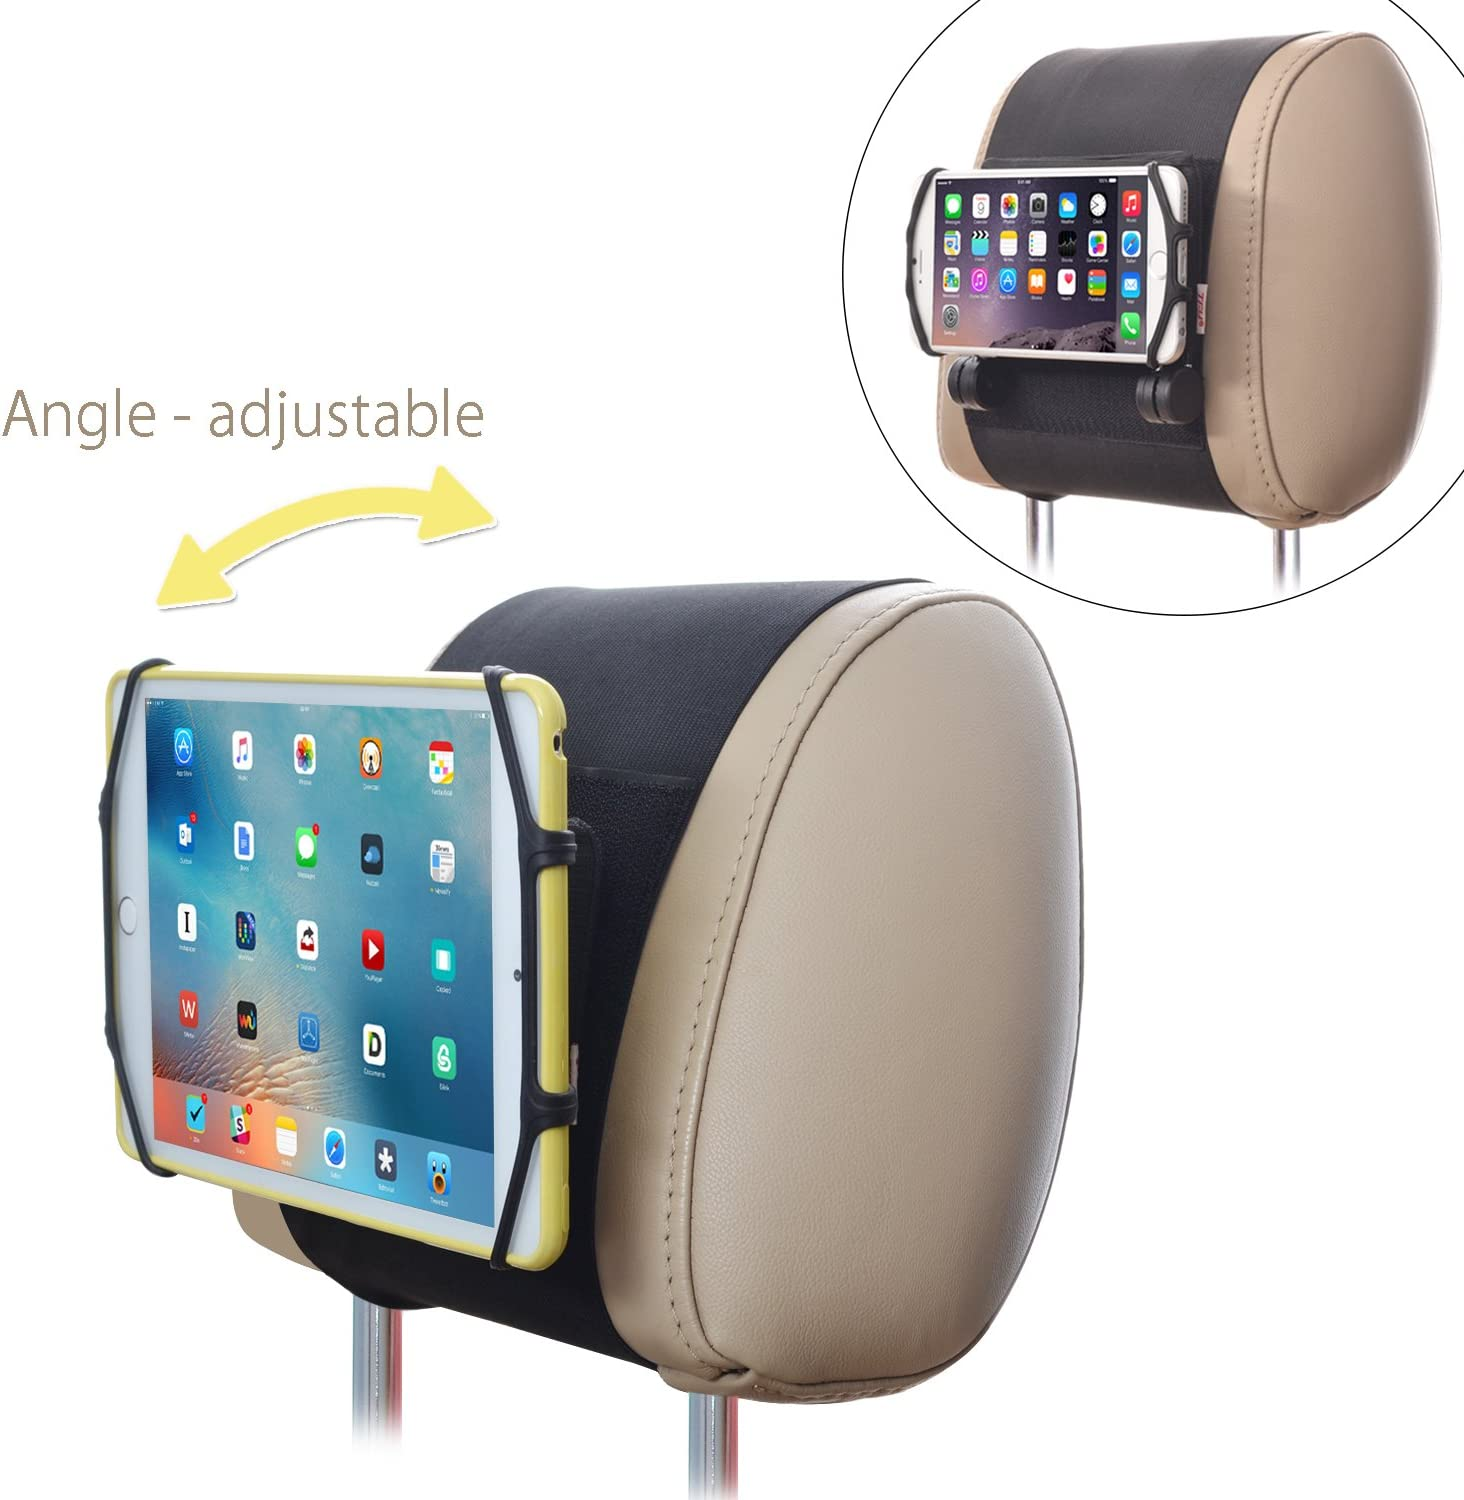 Car Mount TFY Universal Car Headrest Mount Holder with Silicon Holding Net Compatible with Both 4.5-6 Inch Phones and 7-10.5 Inch Tablets